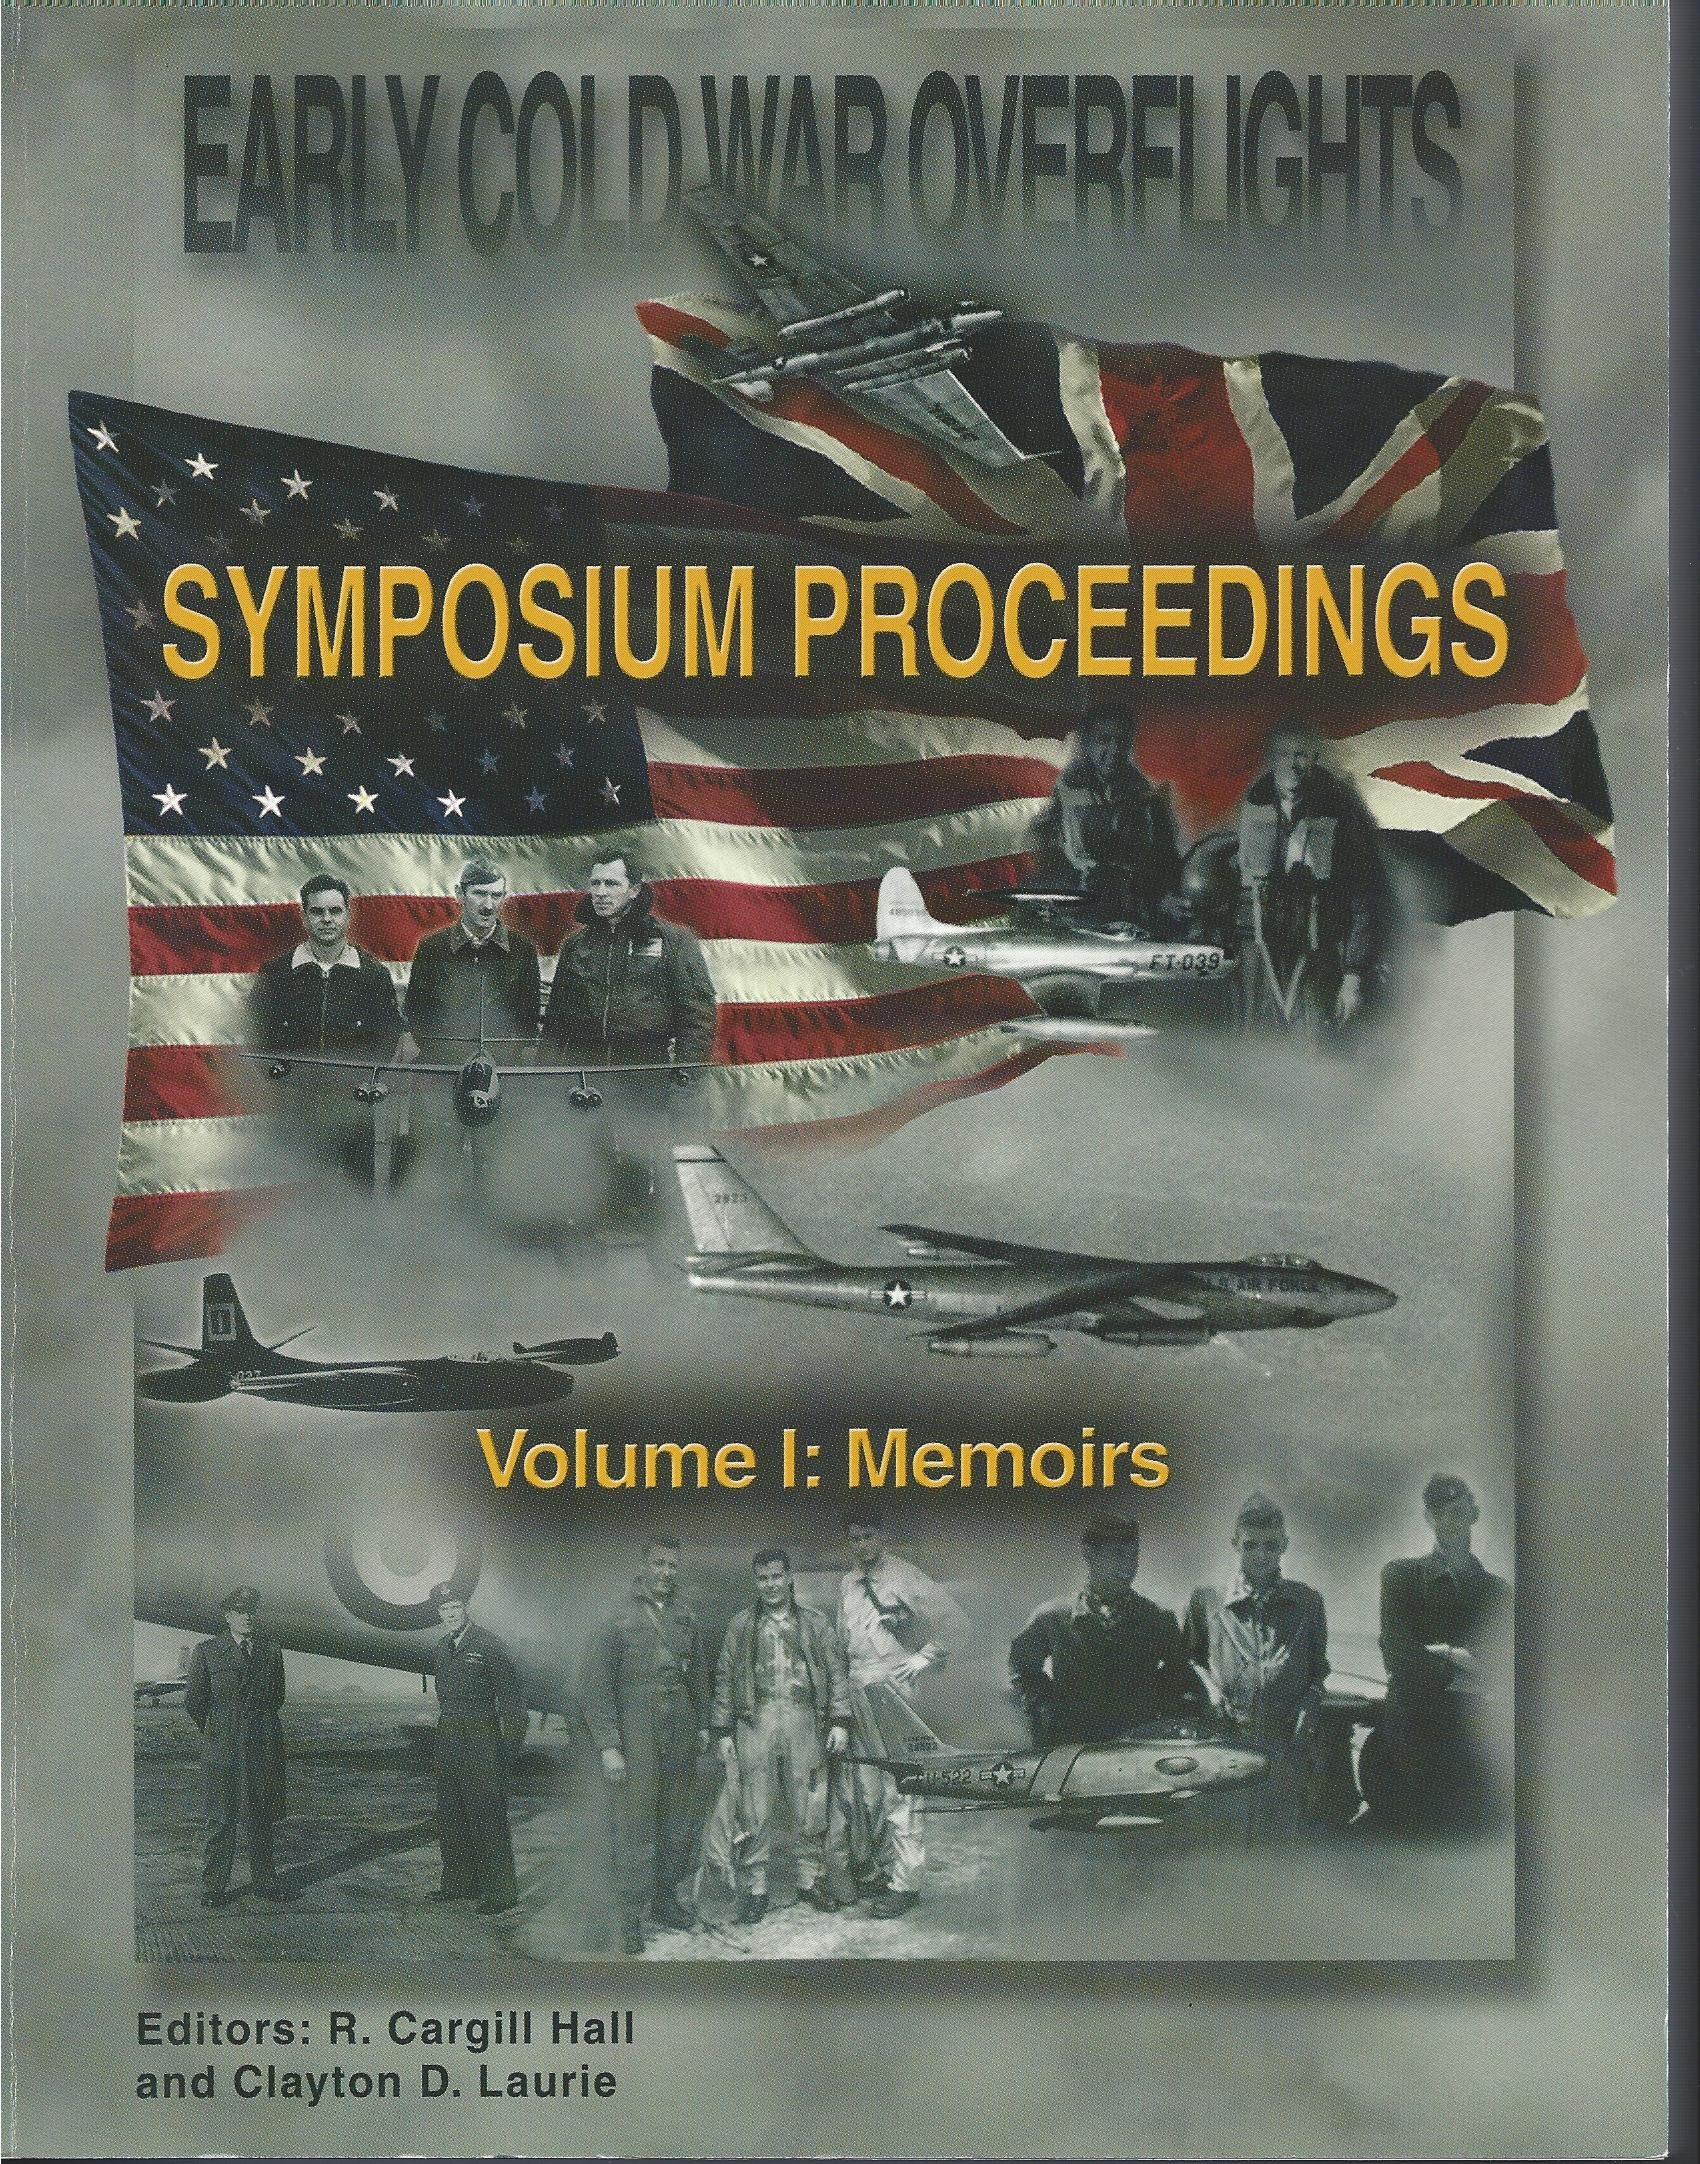 Early Cold War Overflights, 1950-1956, Symposium Proceedings, Held at the Tighe Auditorium, Defense Intelligence Agency, February 22-23, 2001, Volume 1: Memoirs; Volume 2, Appendices. ebook